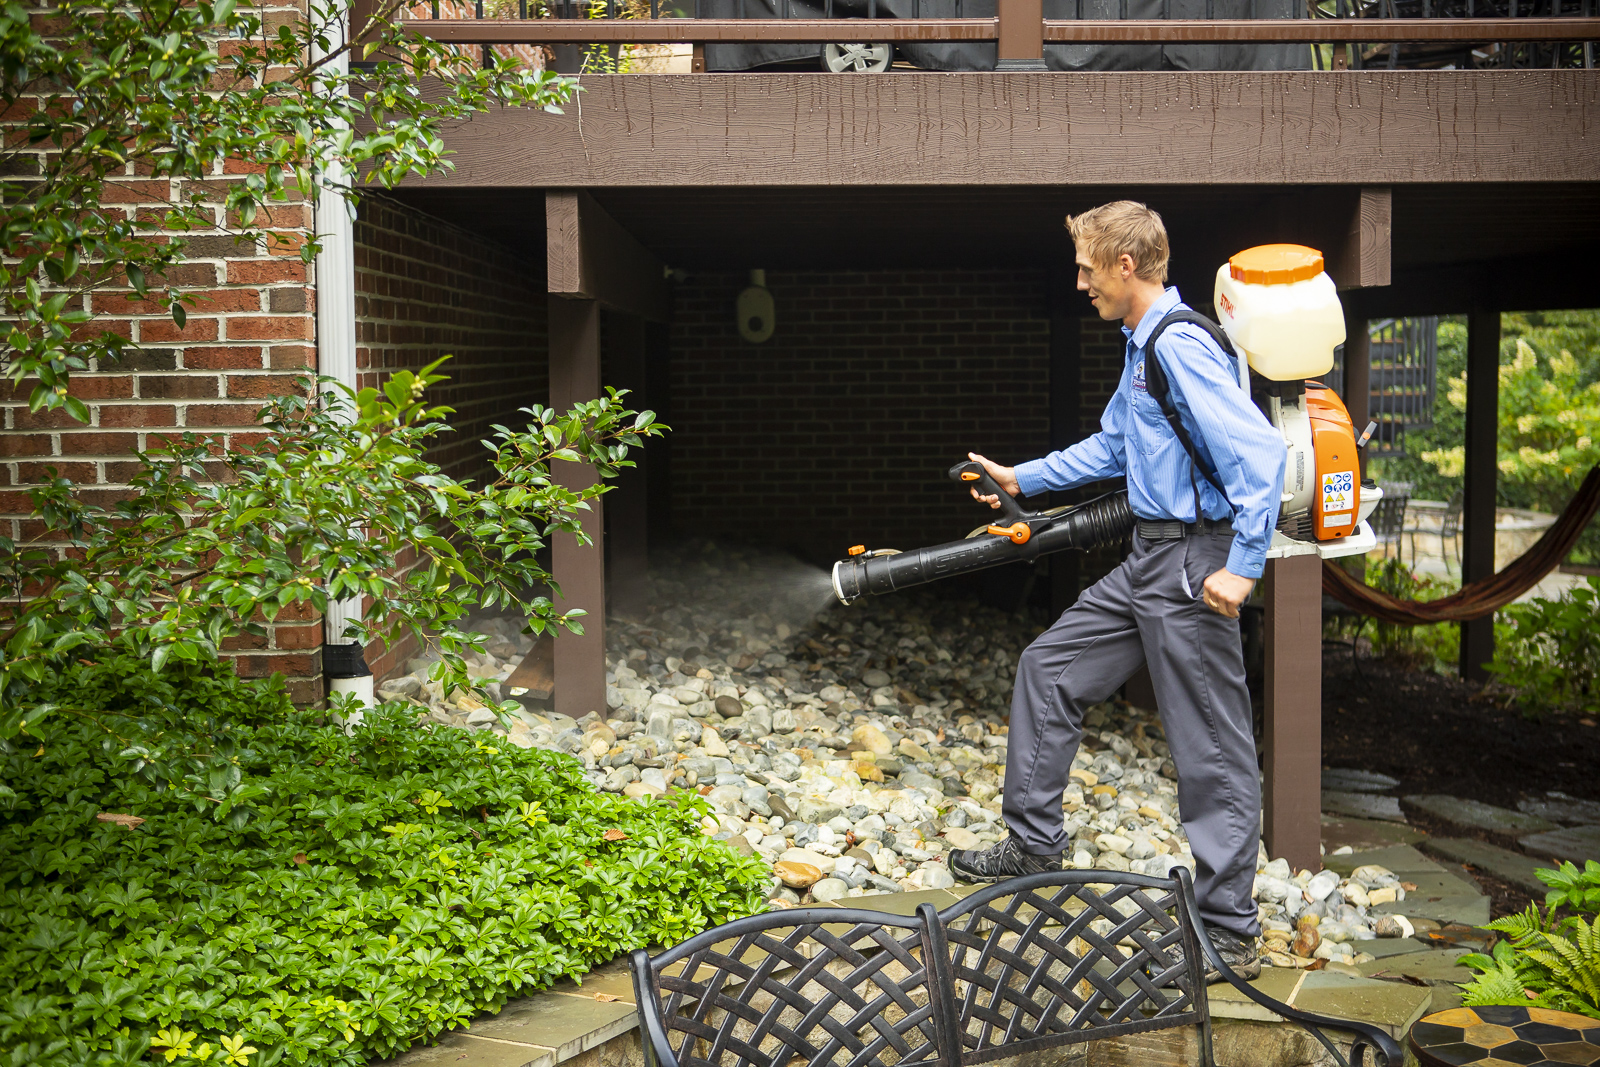 Kingstowne pest control technician spraying mosquito control